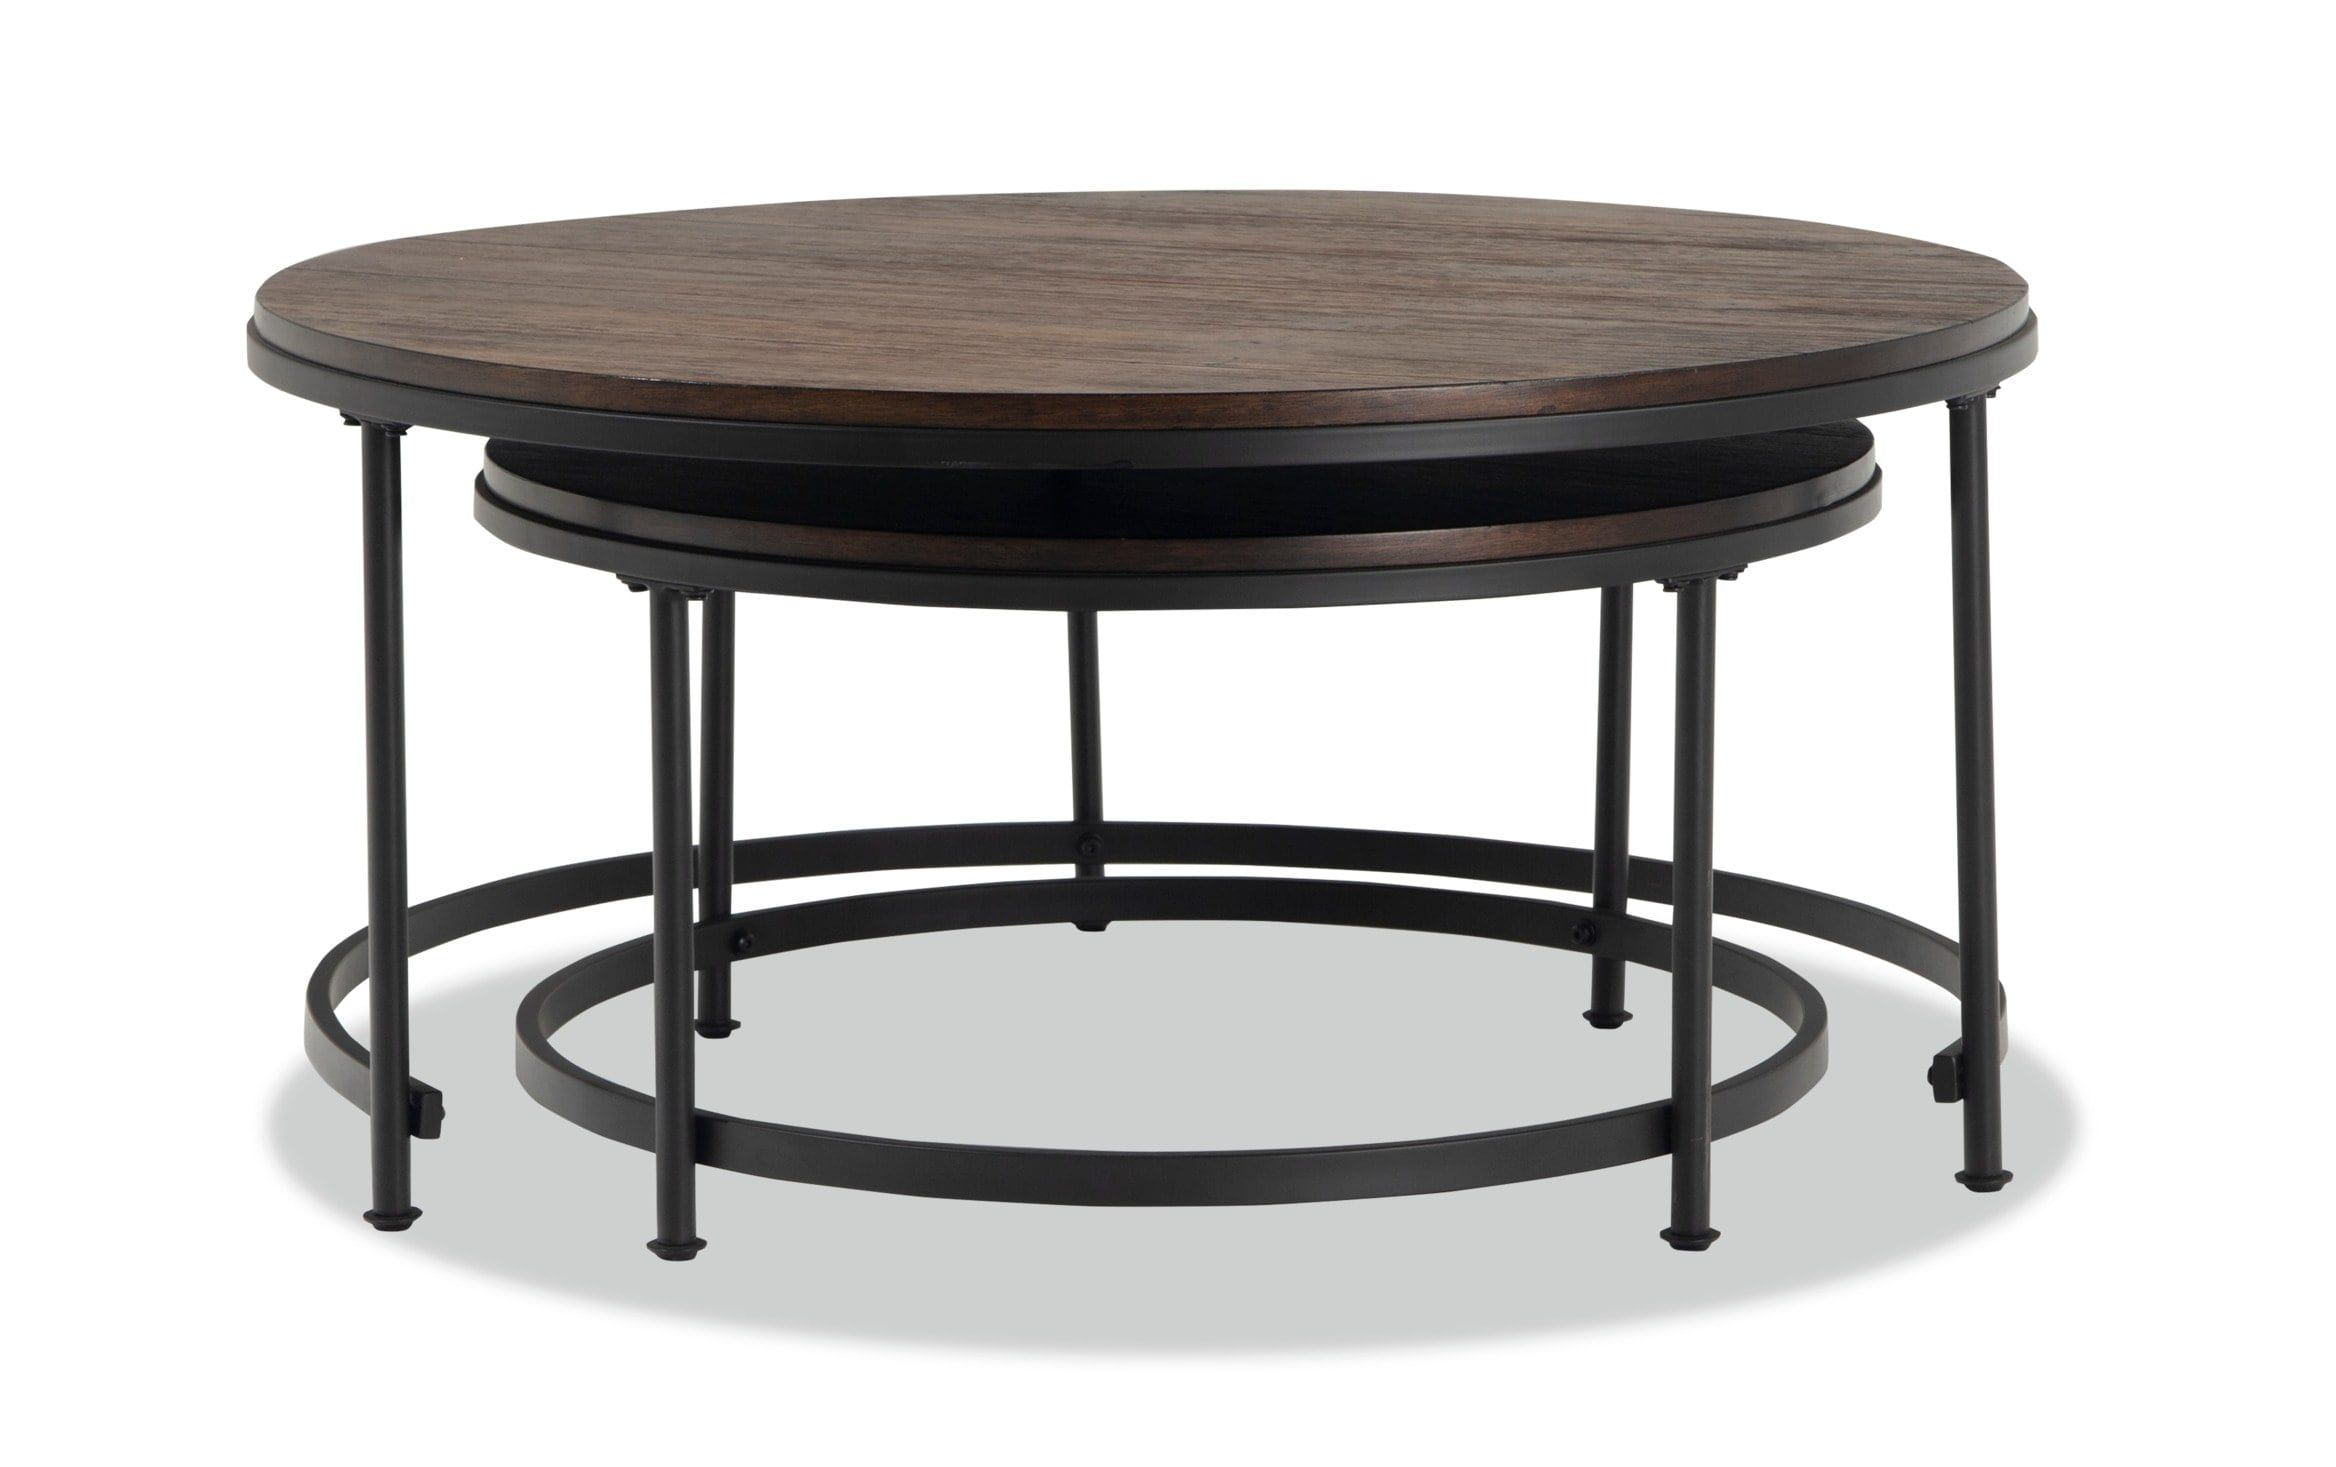 Hunter Nesting Coffee Tables In 2021 Nesting Coffee Tables Coffee Table Coffee Table Setting [ 1467 x 2336 Pixel ]